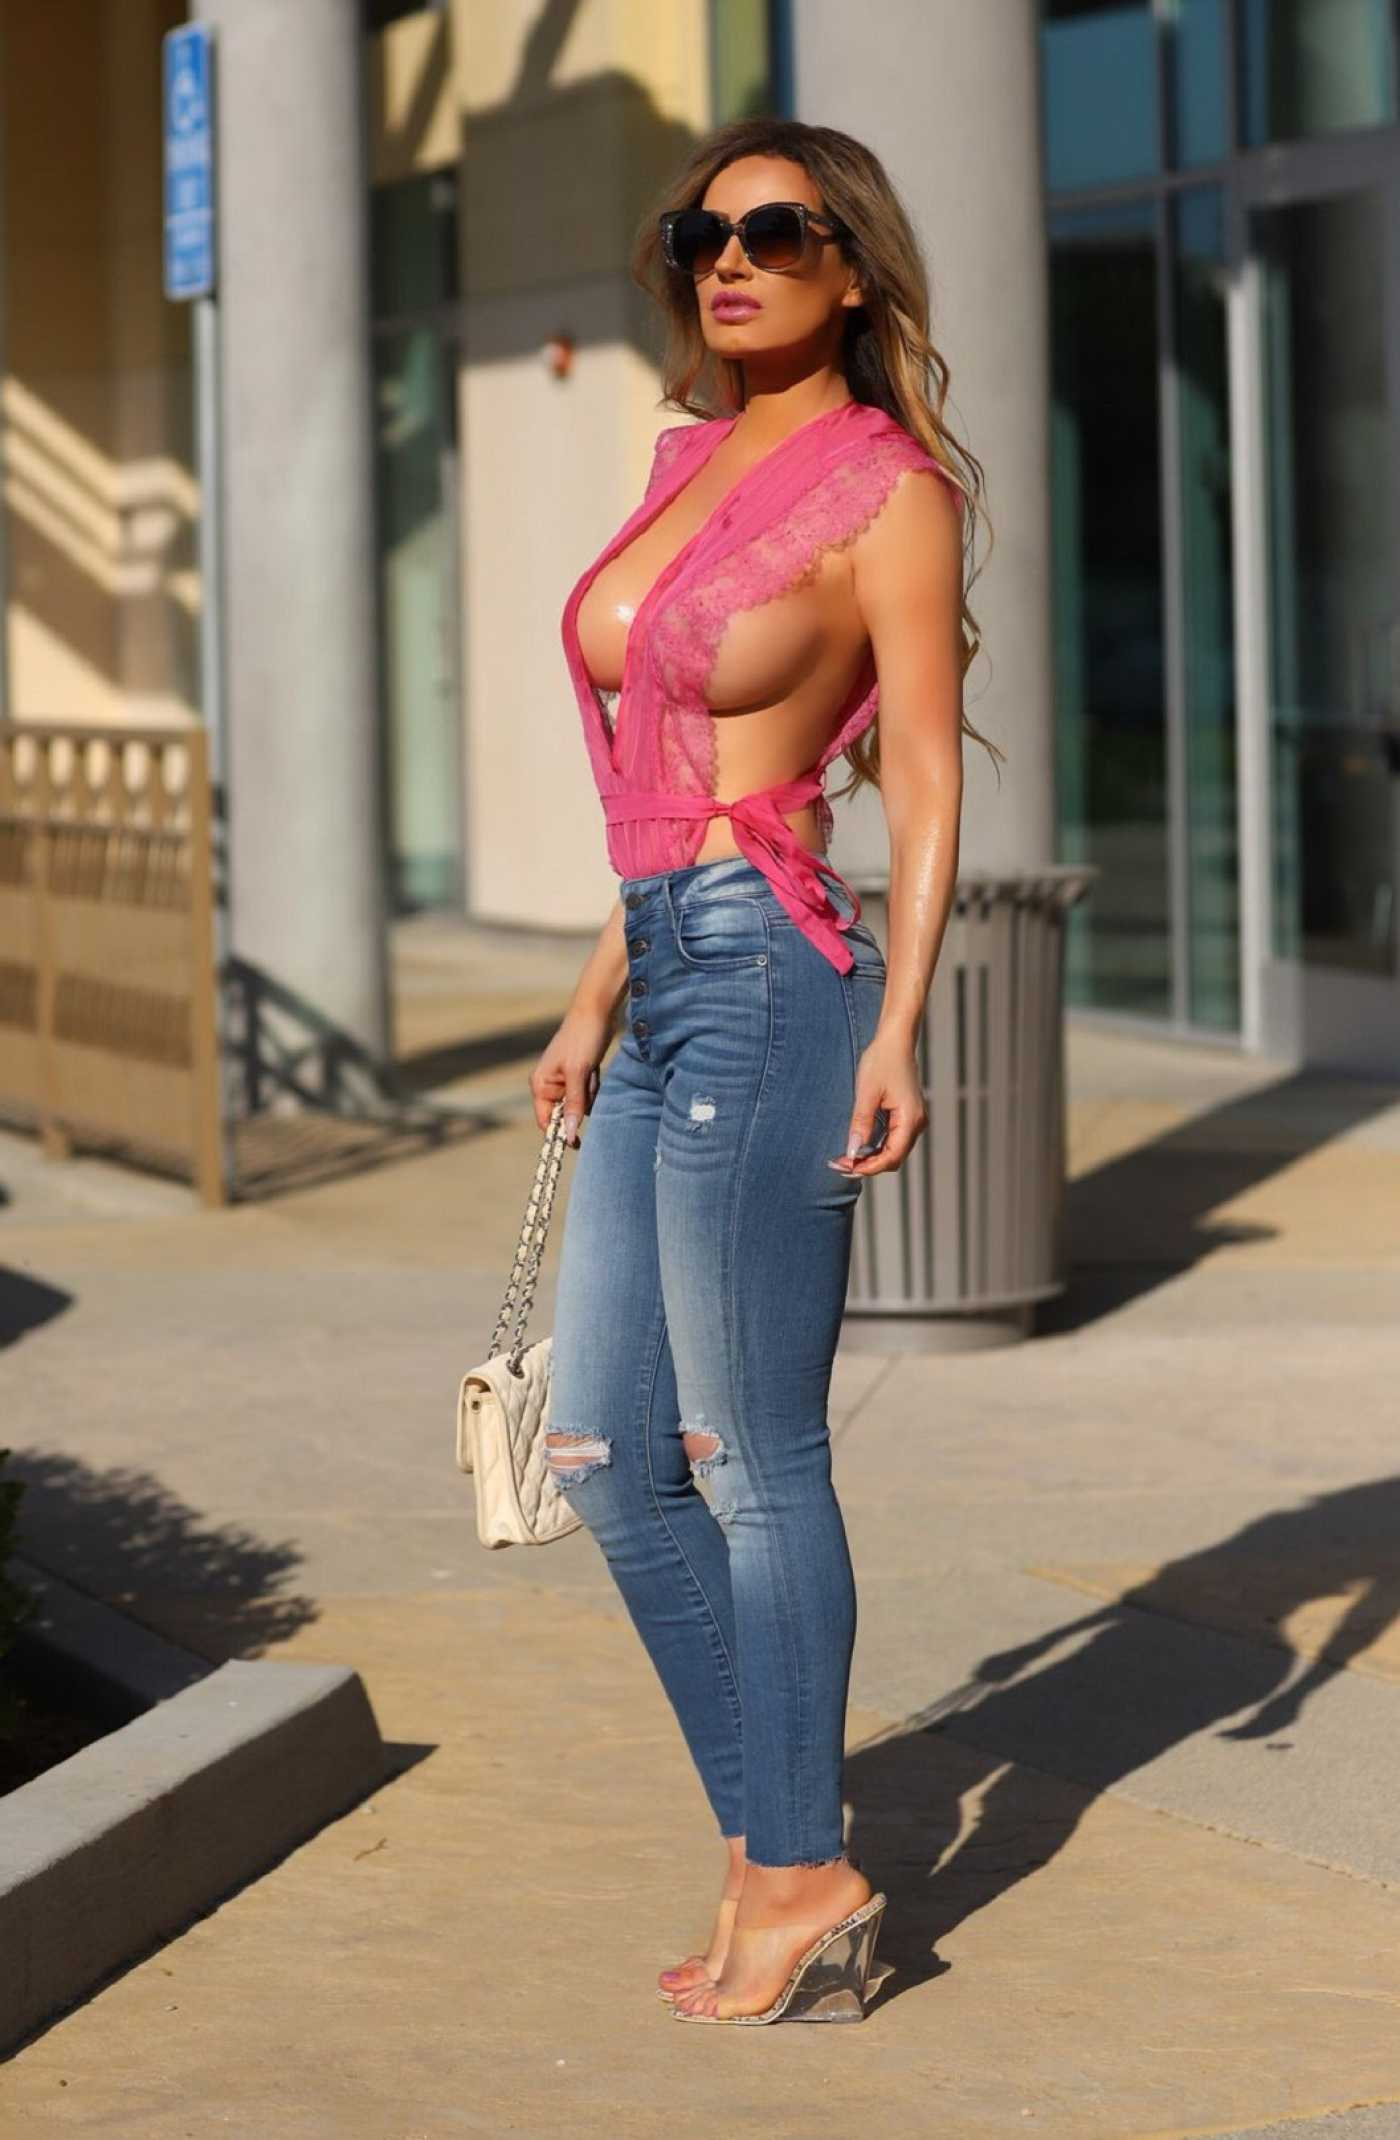 Ana Braga in a Pink Blouse Was Seen Out in Calabasas 09/29/2019